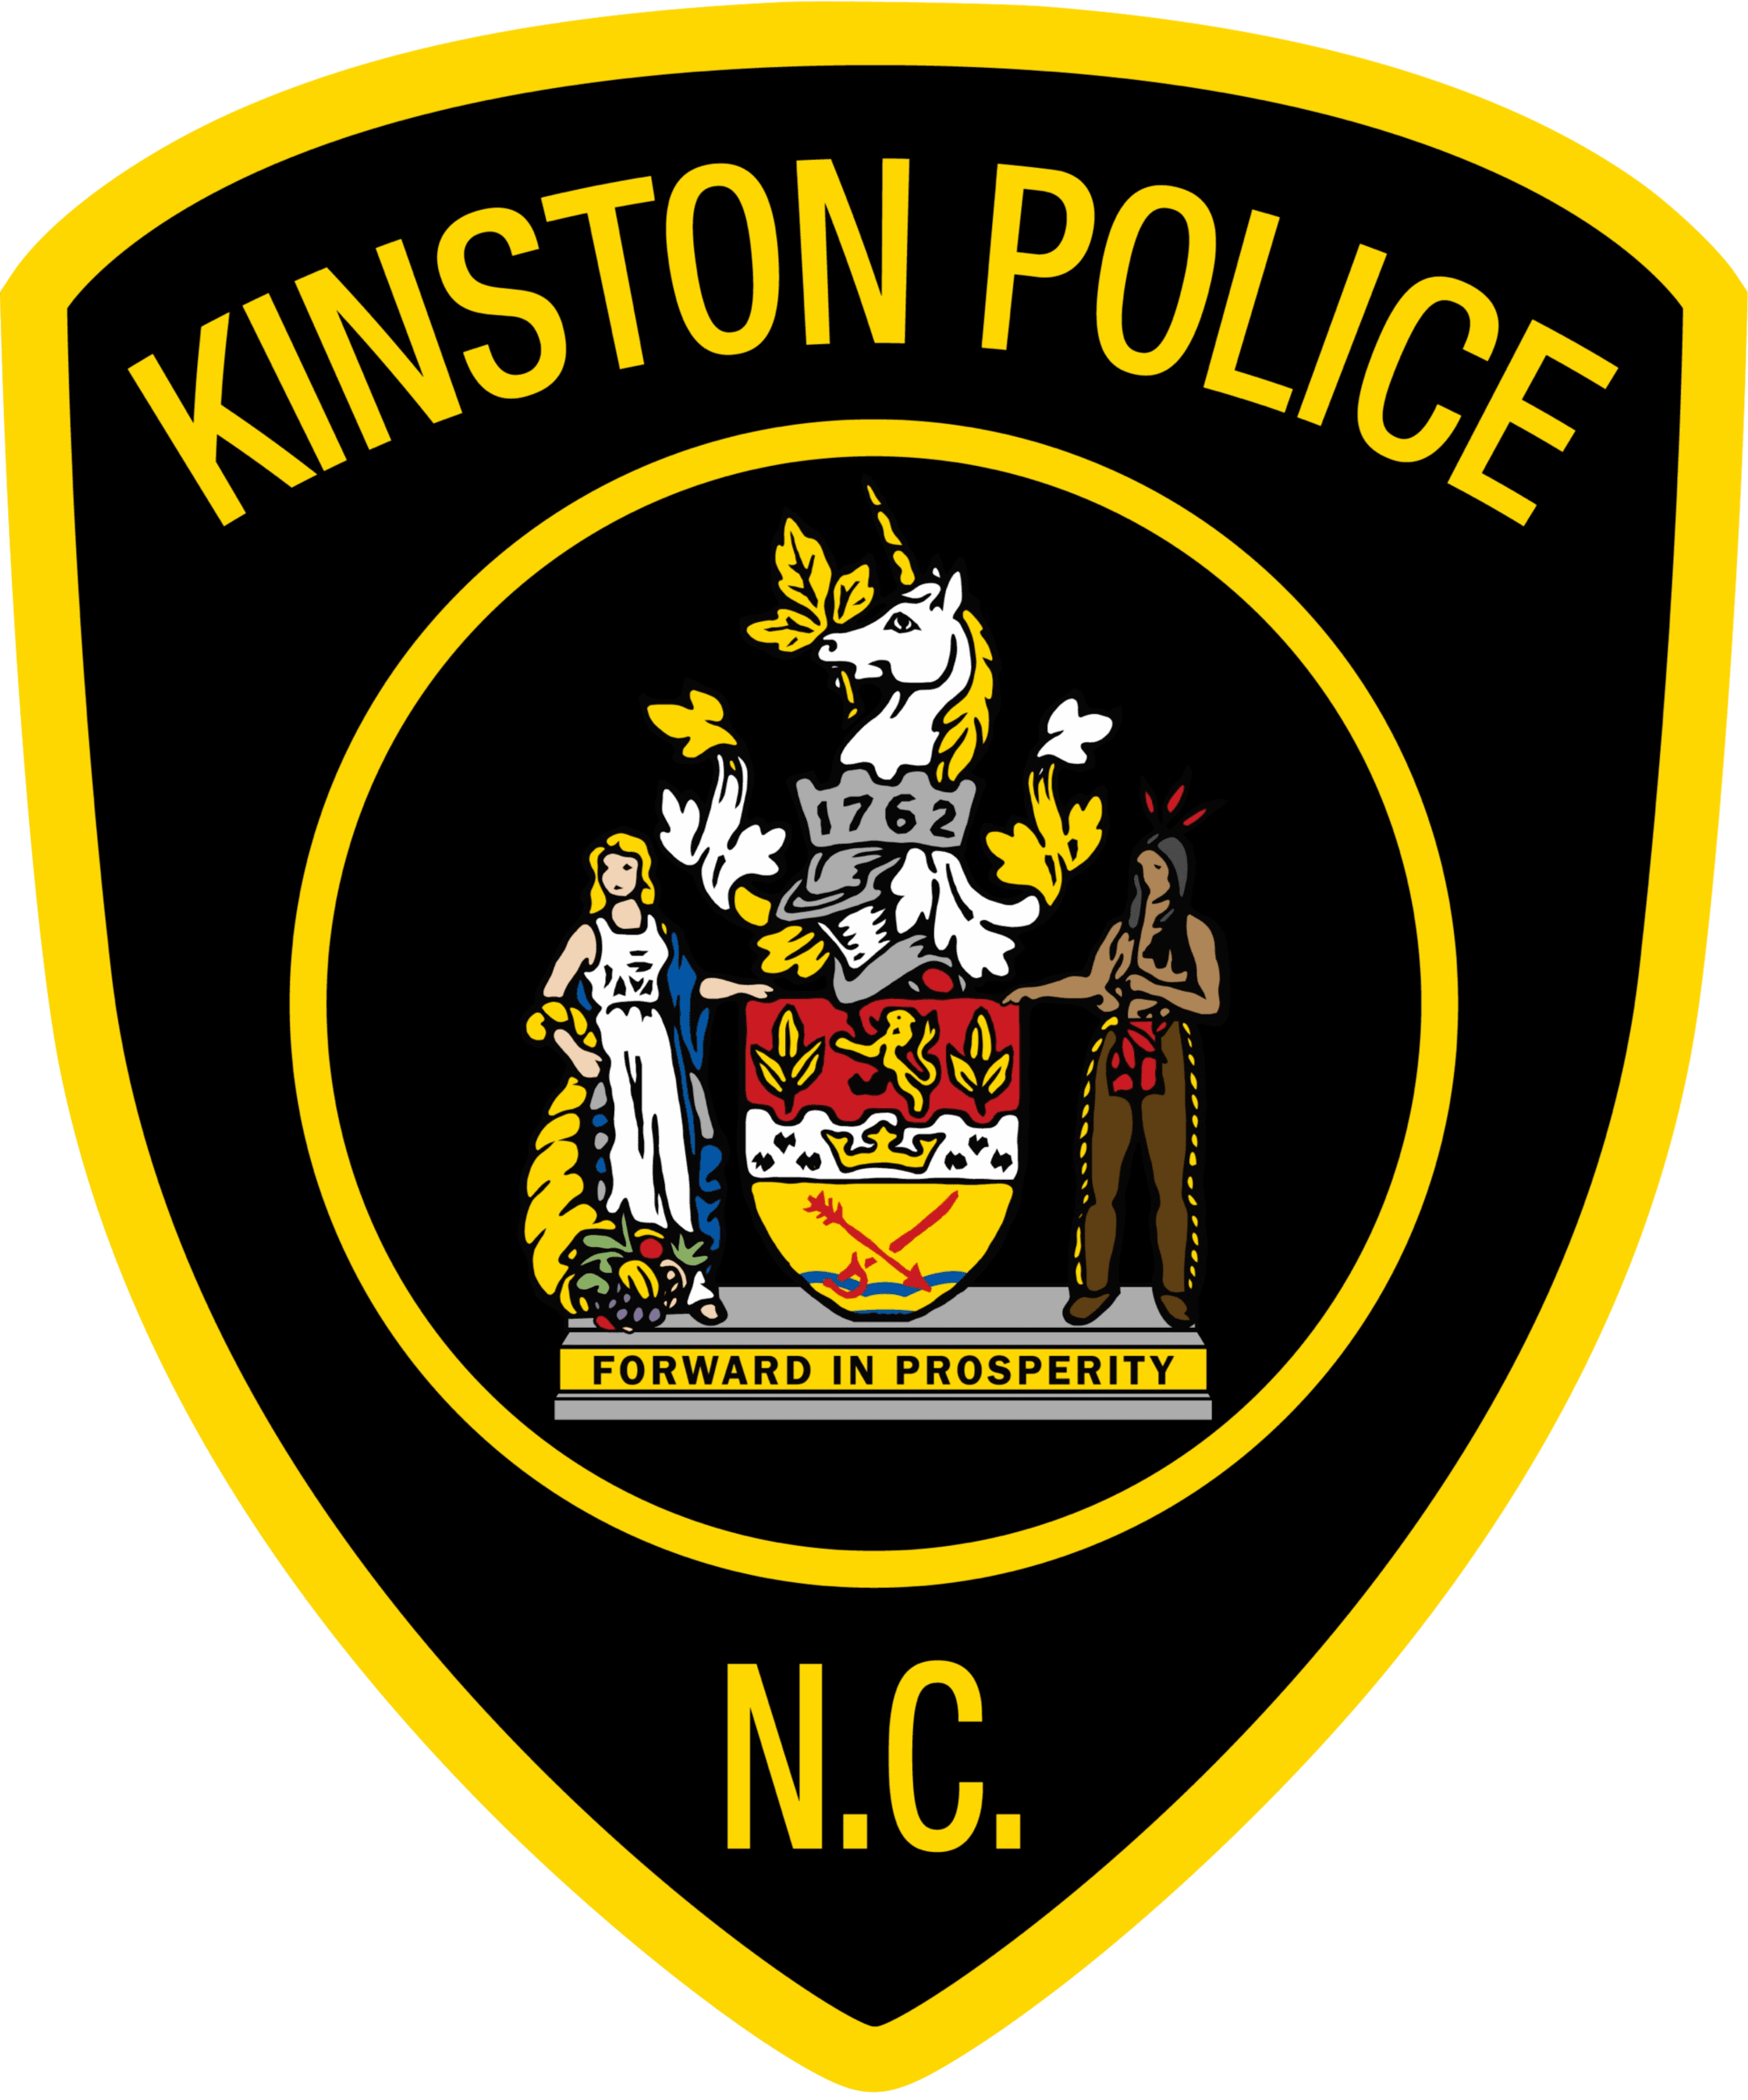 Kinston police seal with core values: Professionalism, Compassion, Fairness, Integrity, Respect and